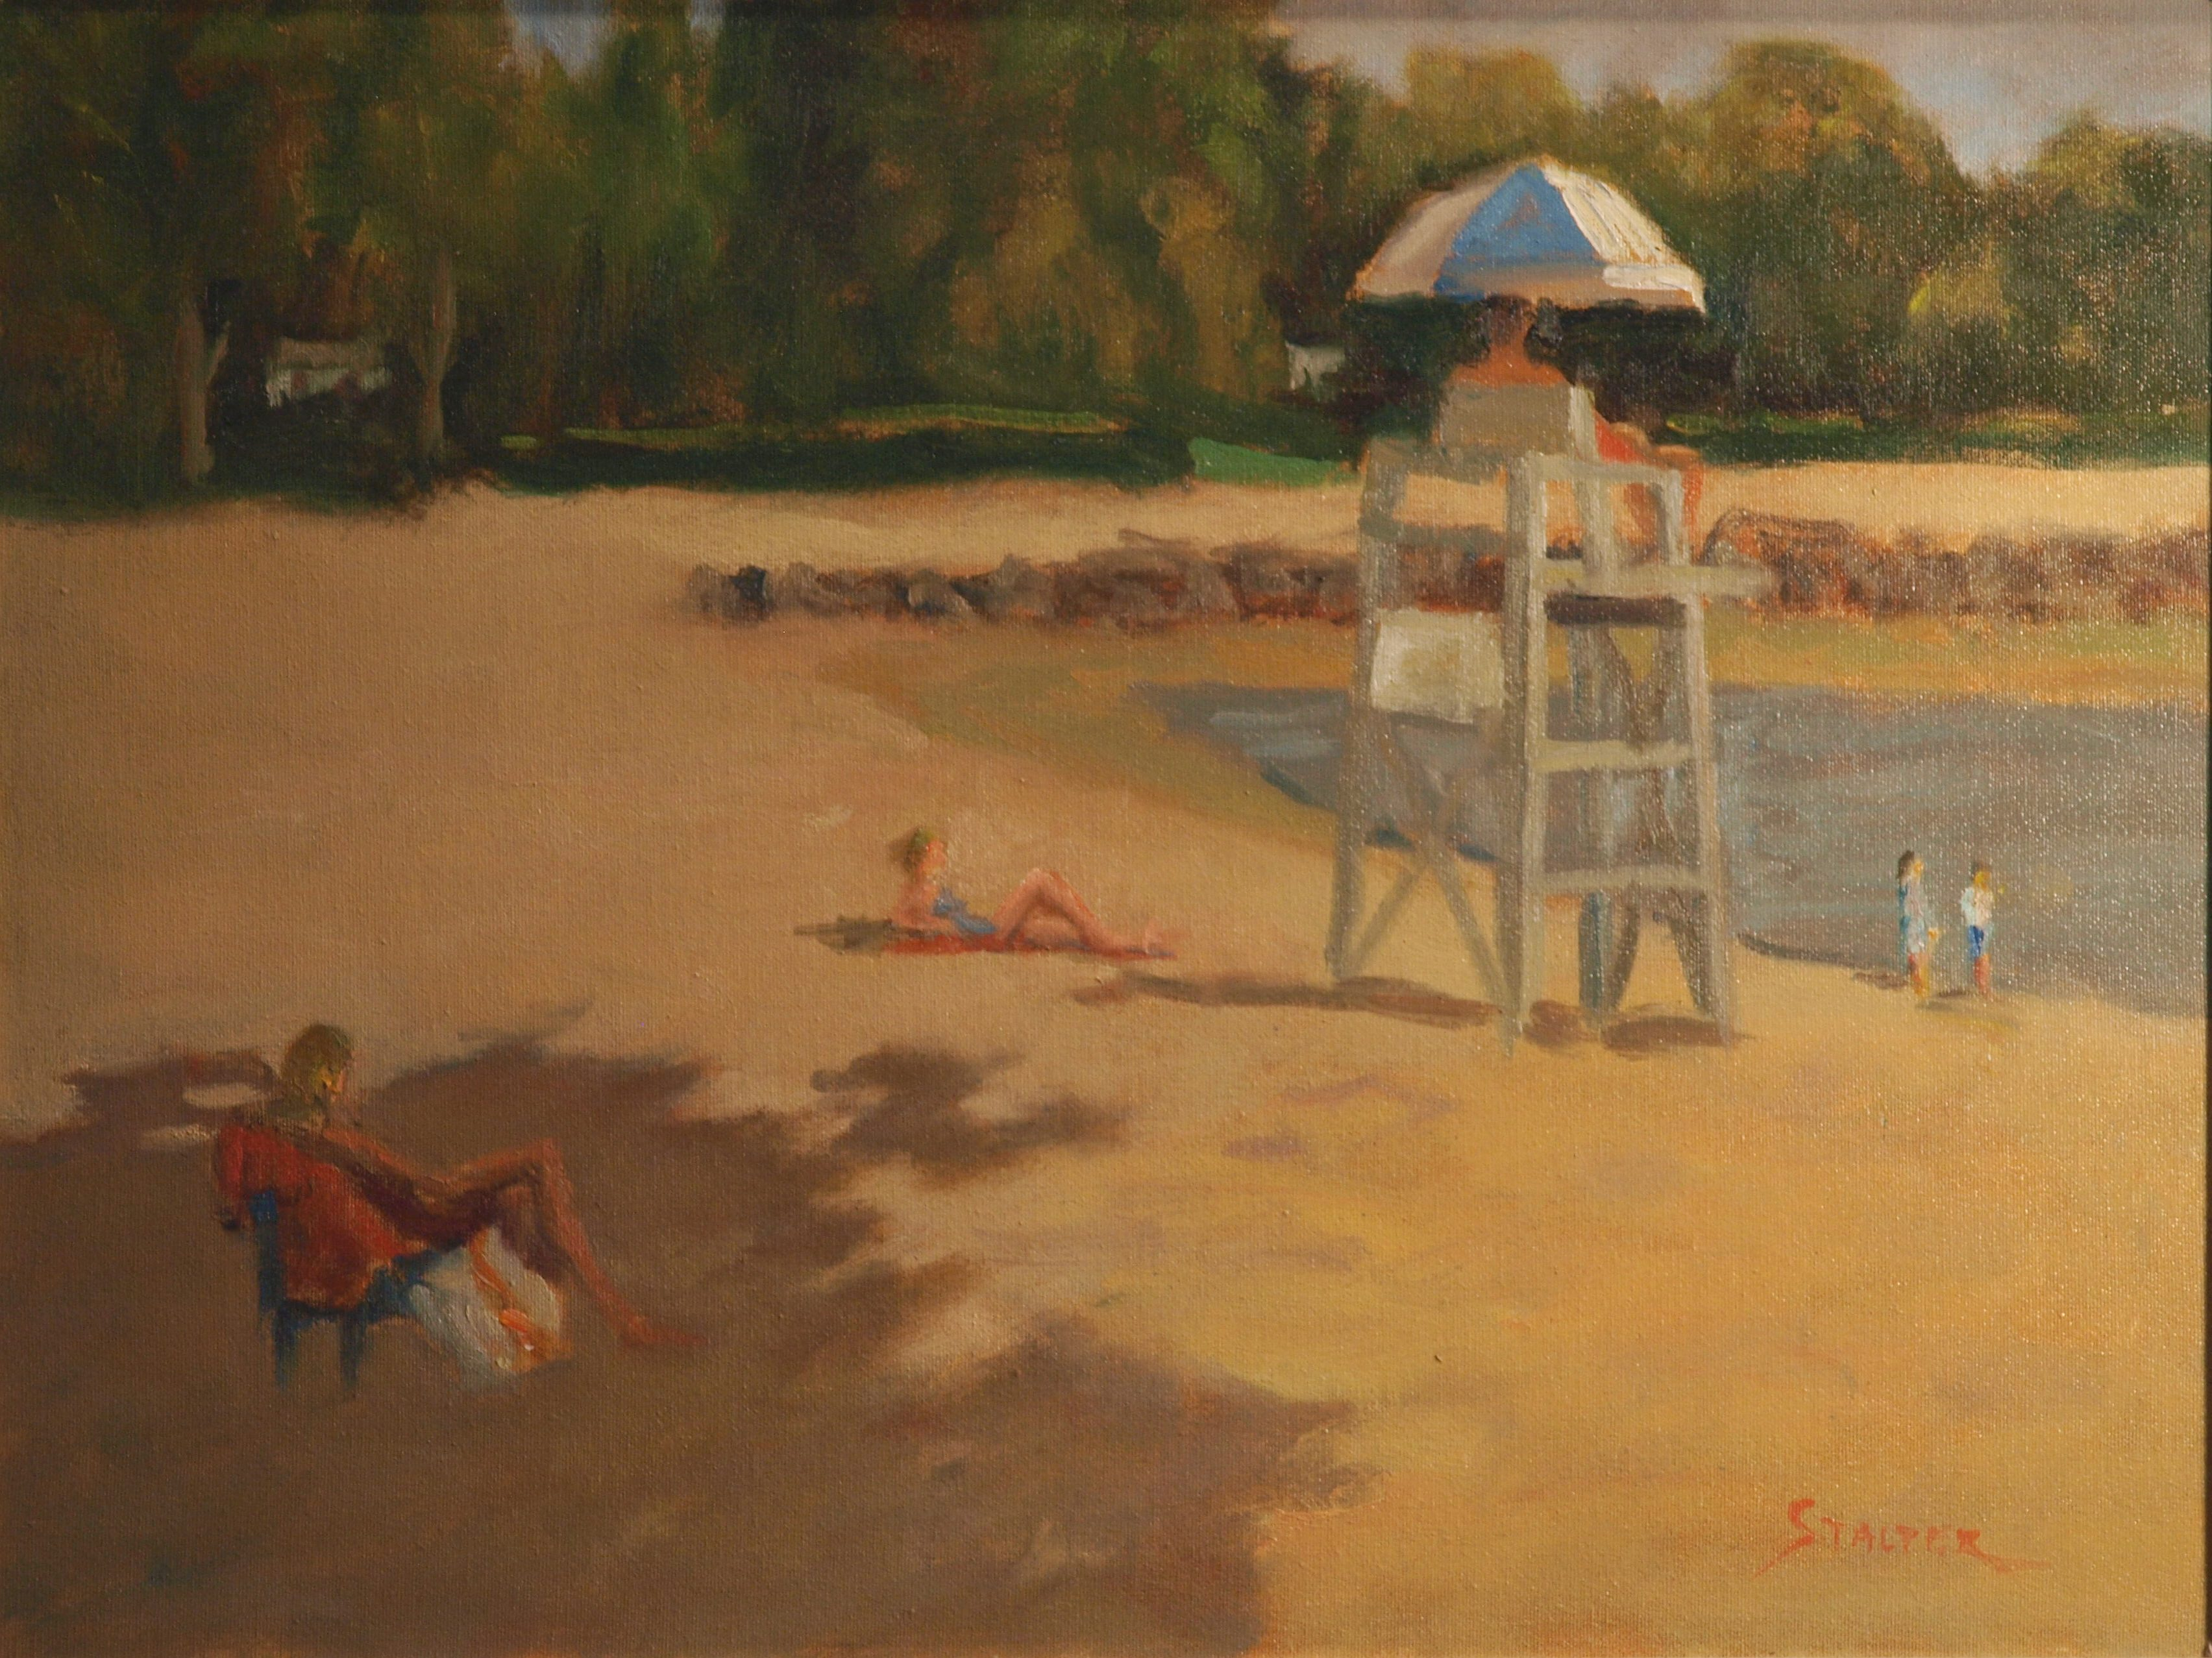 Pear Tree Beach Lifeguard, Oil on Canvas, 18 x 24 Inches, by Richard Stalter, $650